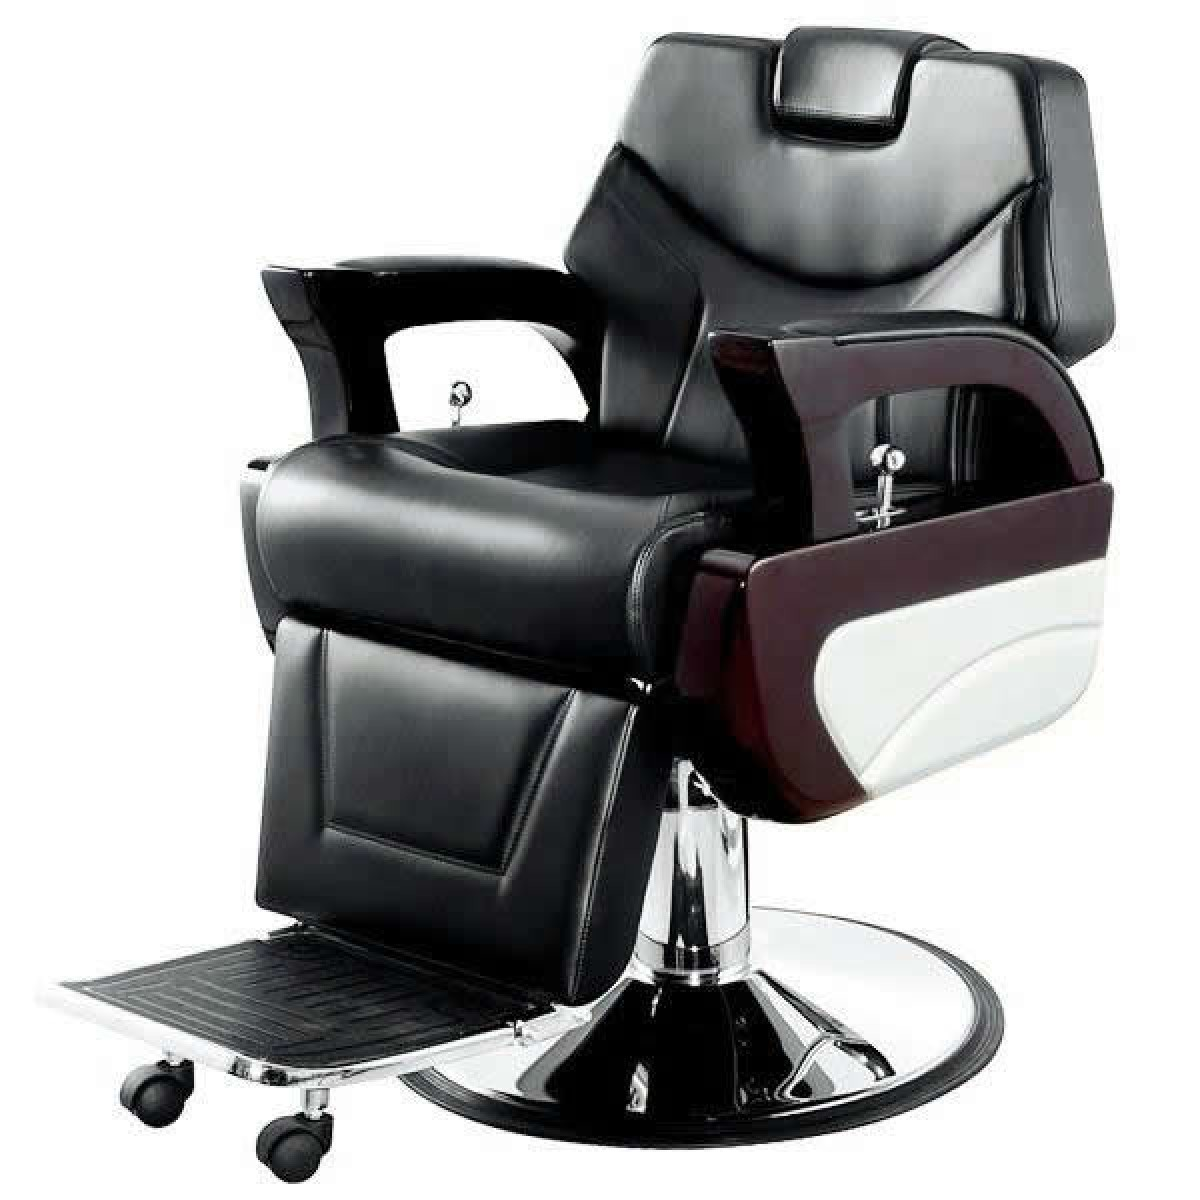 barber chair free shipping austin massage quotaugusto quot shop 3 colors